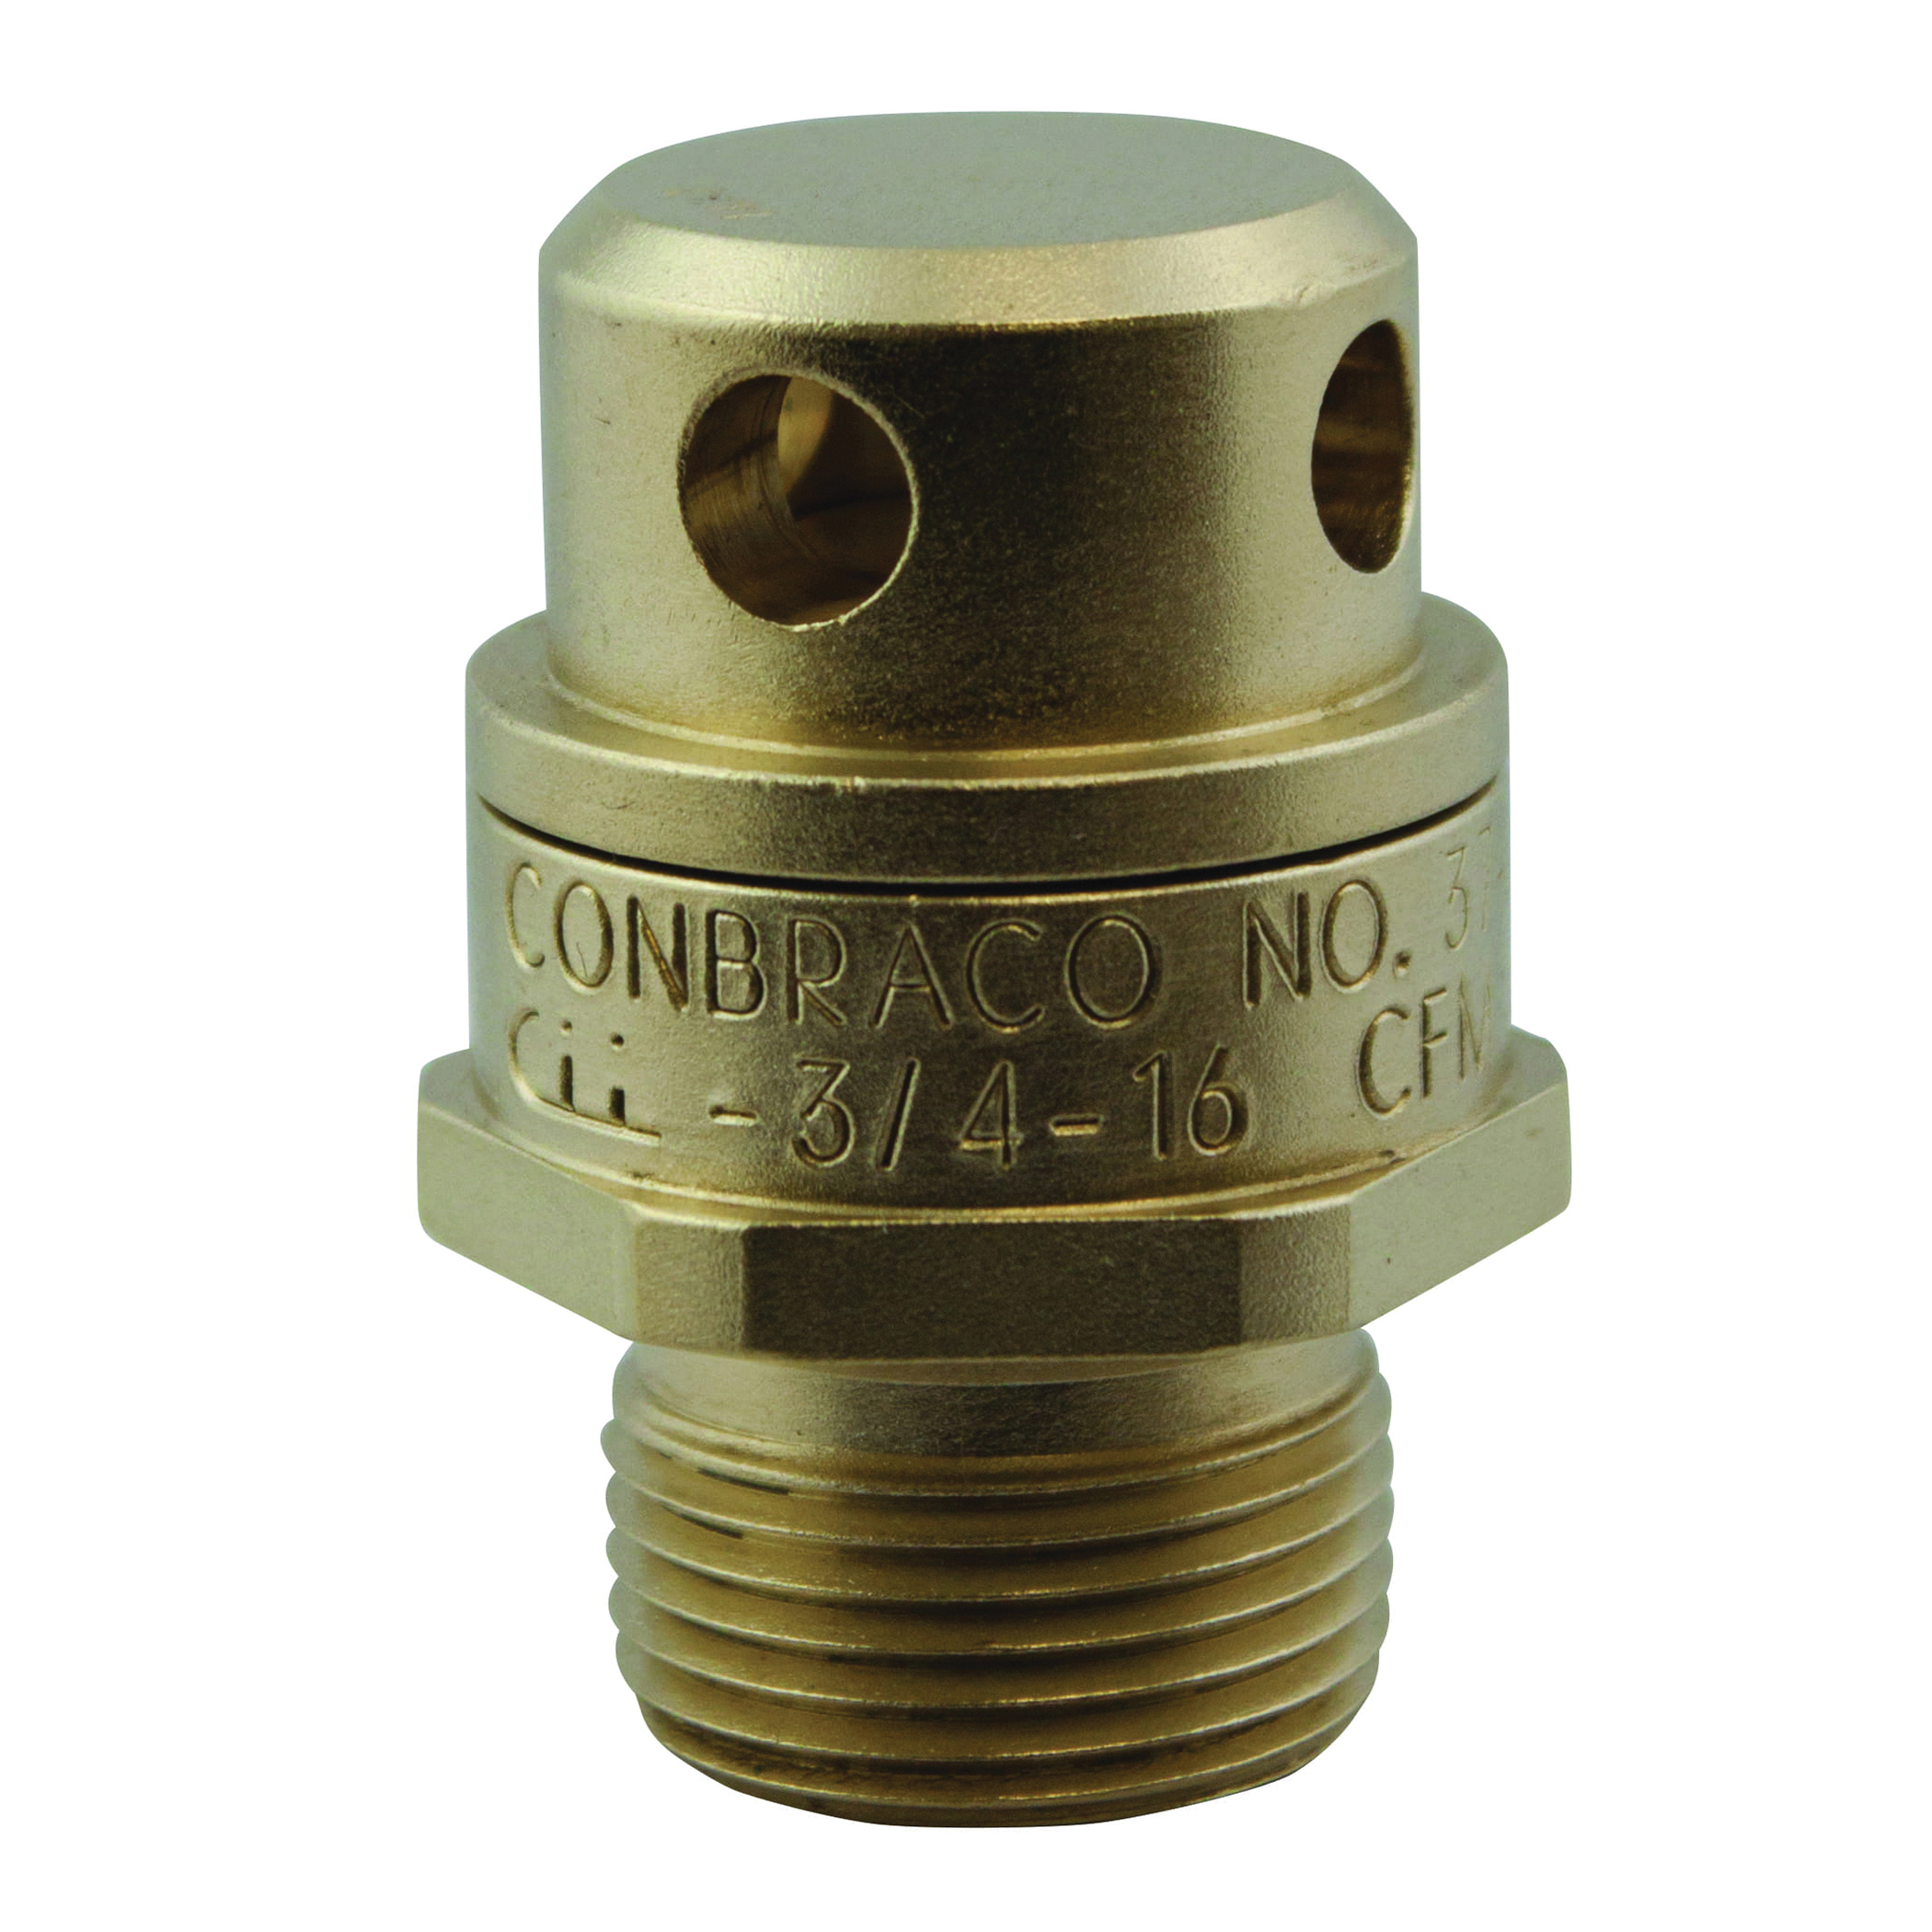 Apollo® 37-202-01 Satin Brass Vacuum Relief Valve, 3/4 in, Threaded, 200 psig, 250 deg F